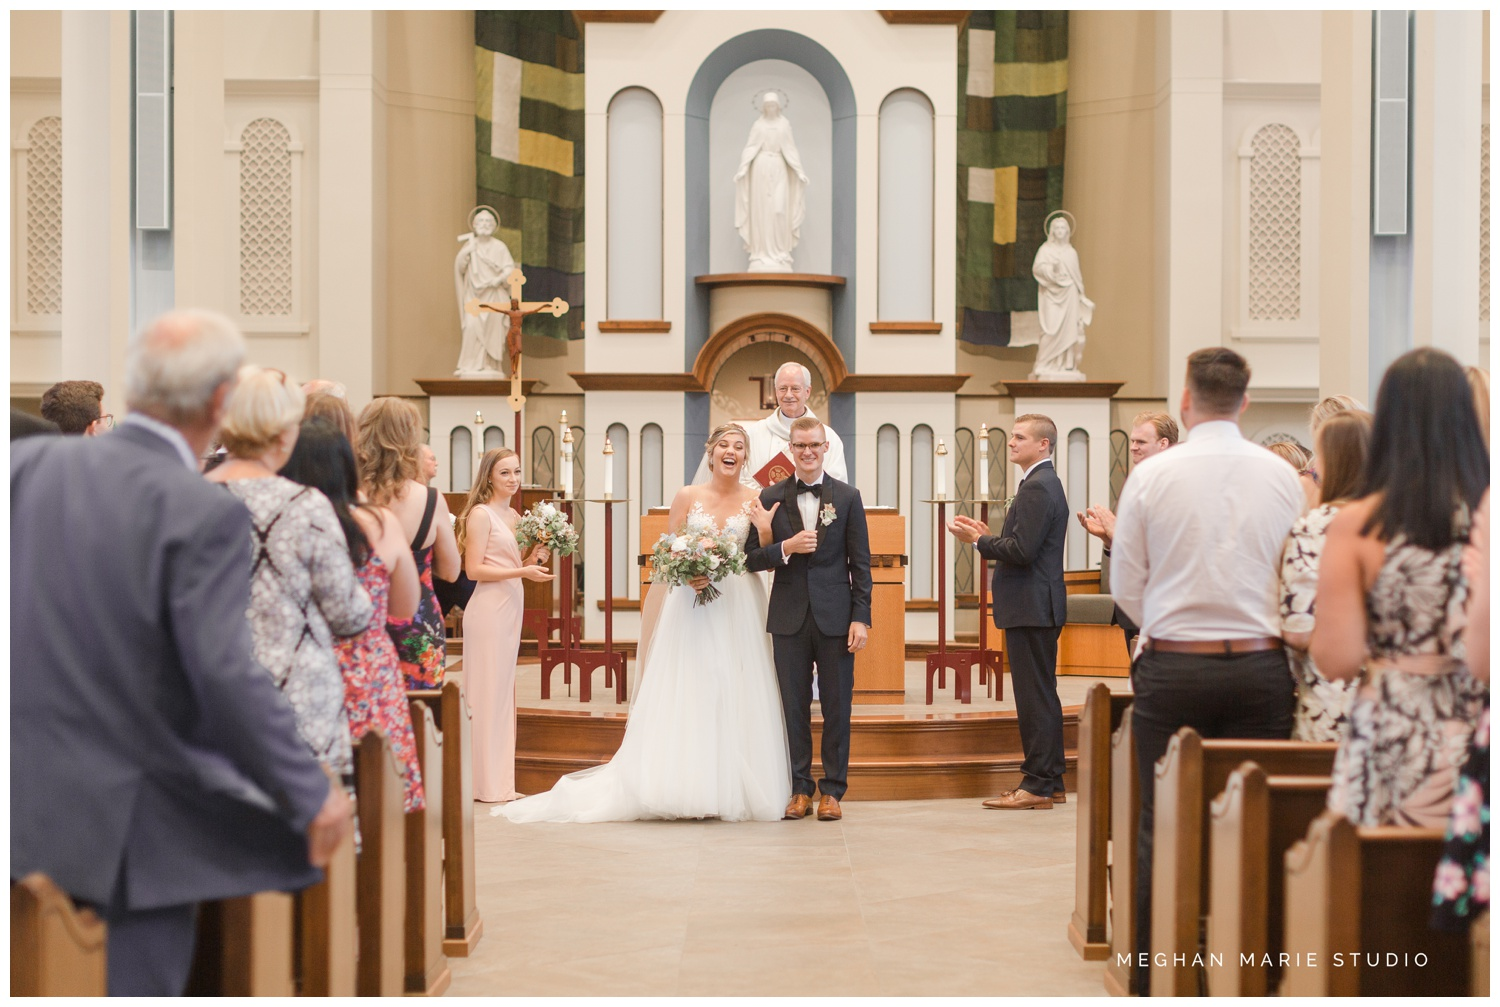 meghan marie studio university of dayton cathedral wedding with romantic earth tone donuts and decor steam plant ohio wedding_0311.jpg